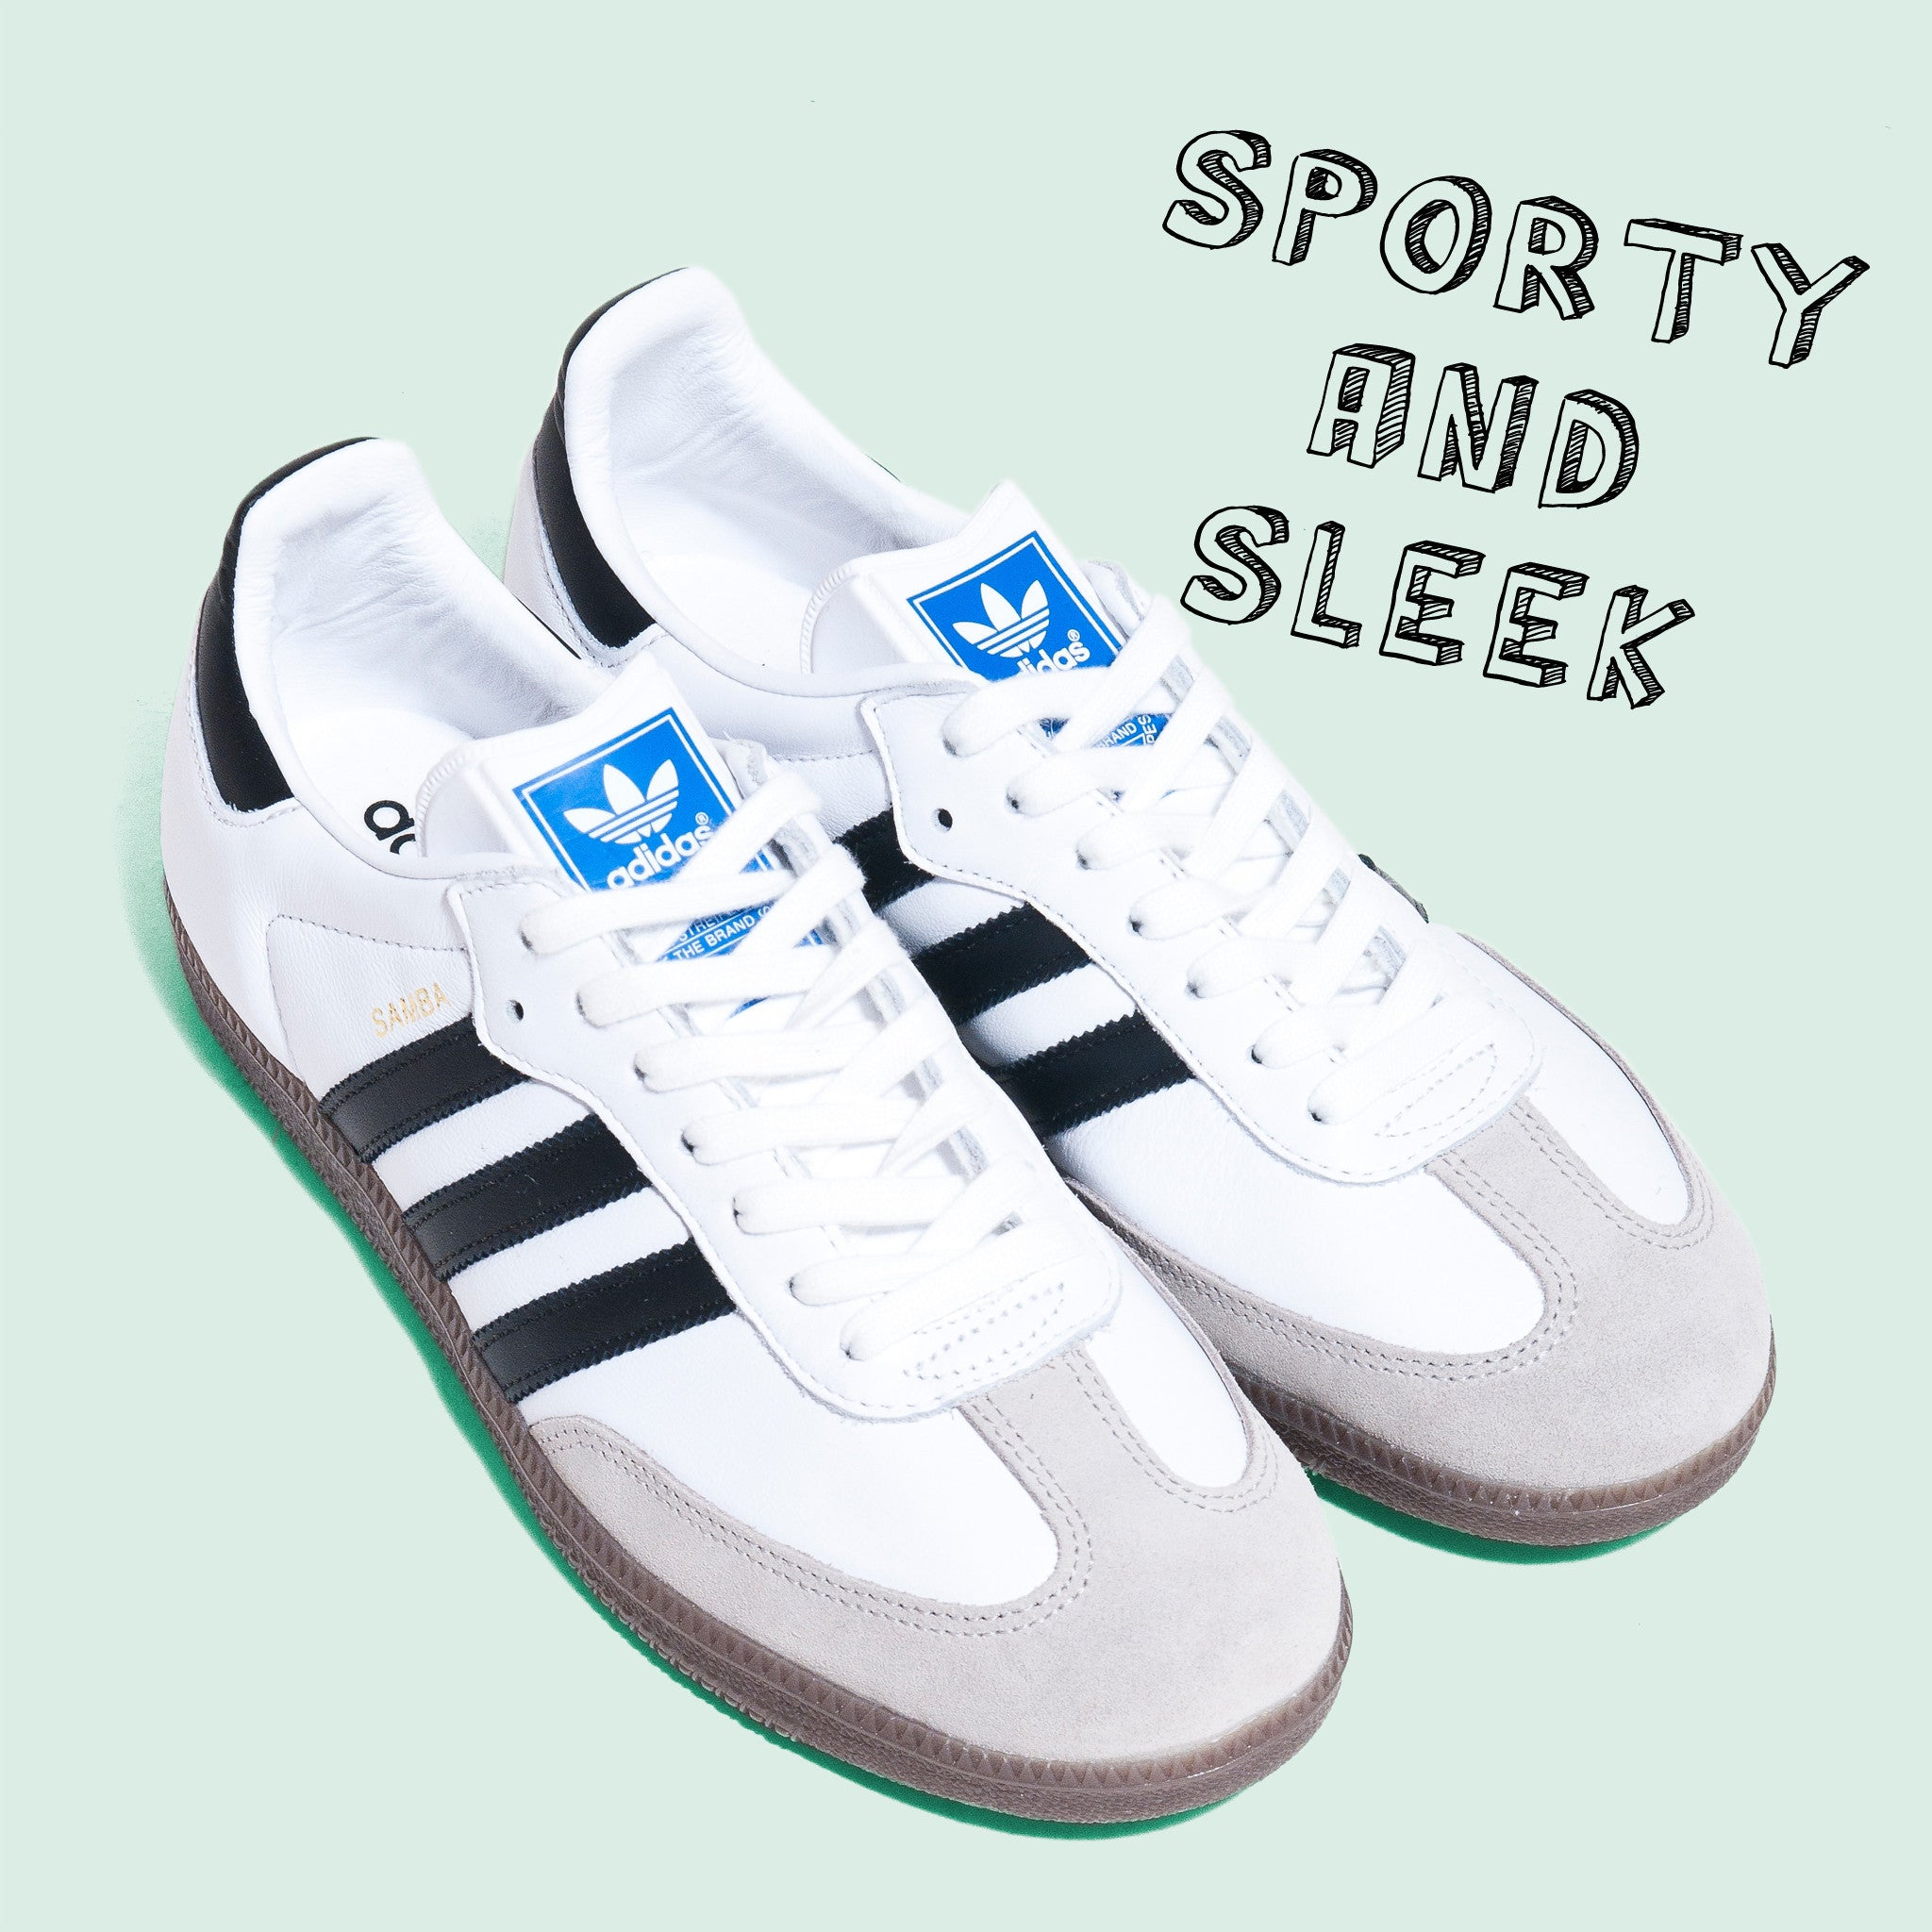 520ebe448007 Summer Essentials  Shoes!